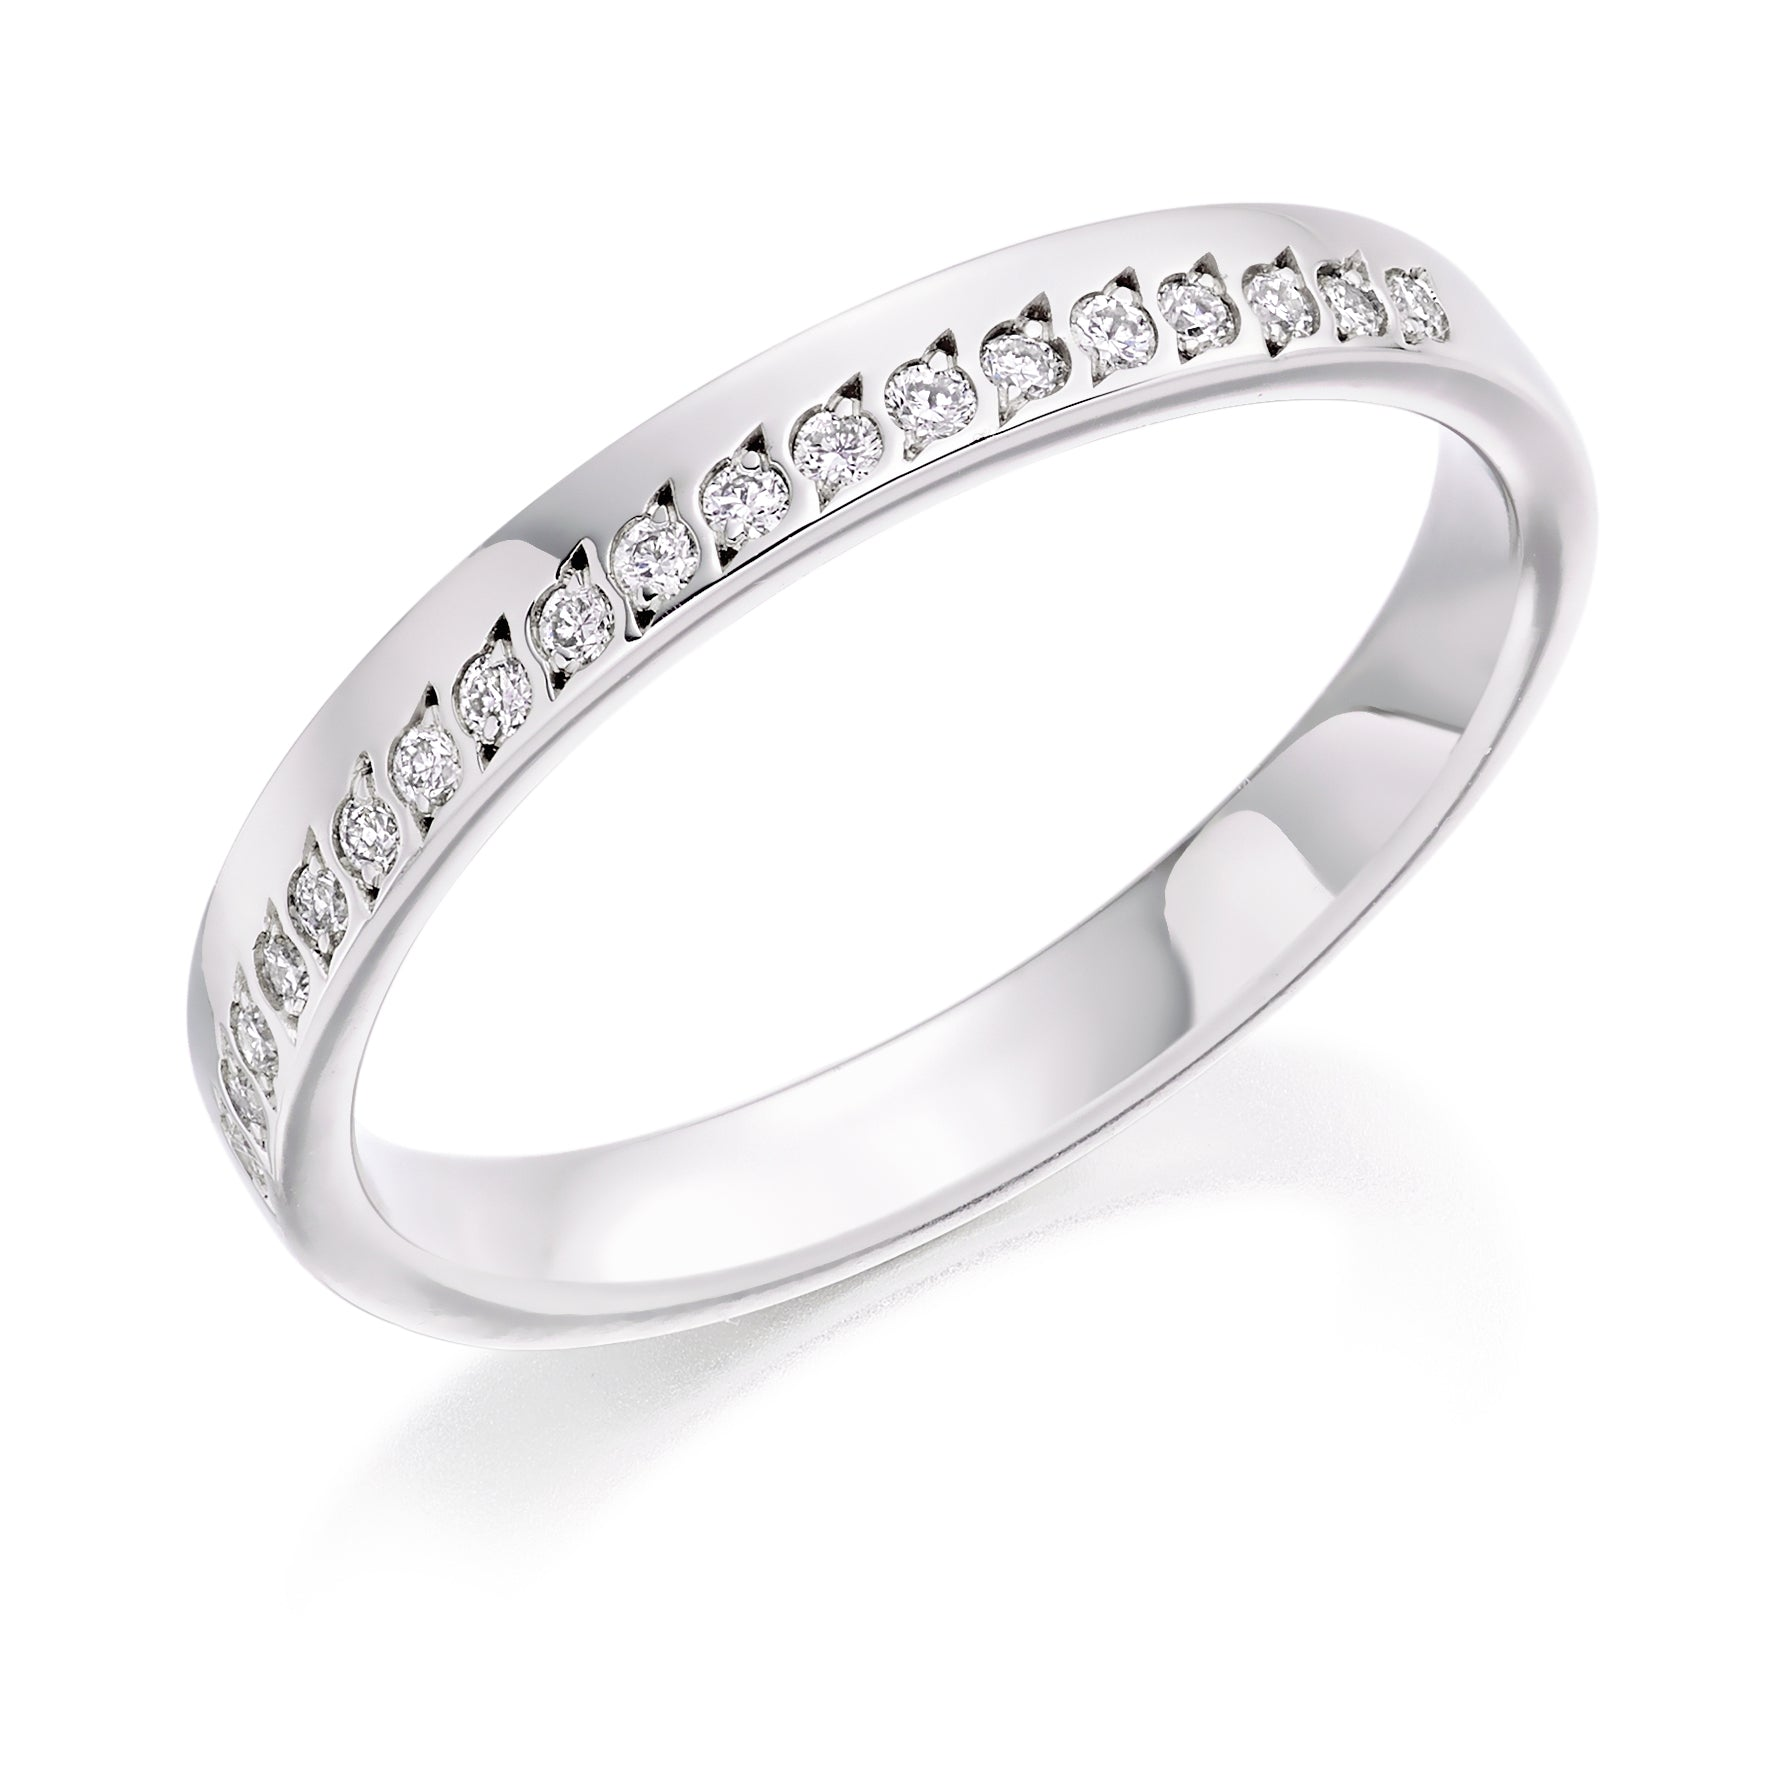 18ct White Gold 0.15ct Round Brilliant Cut Diamonds Offset Wedding Ring